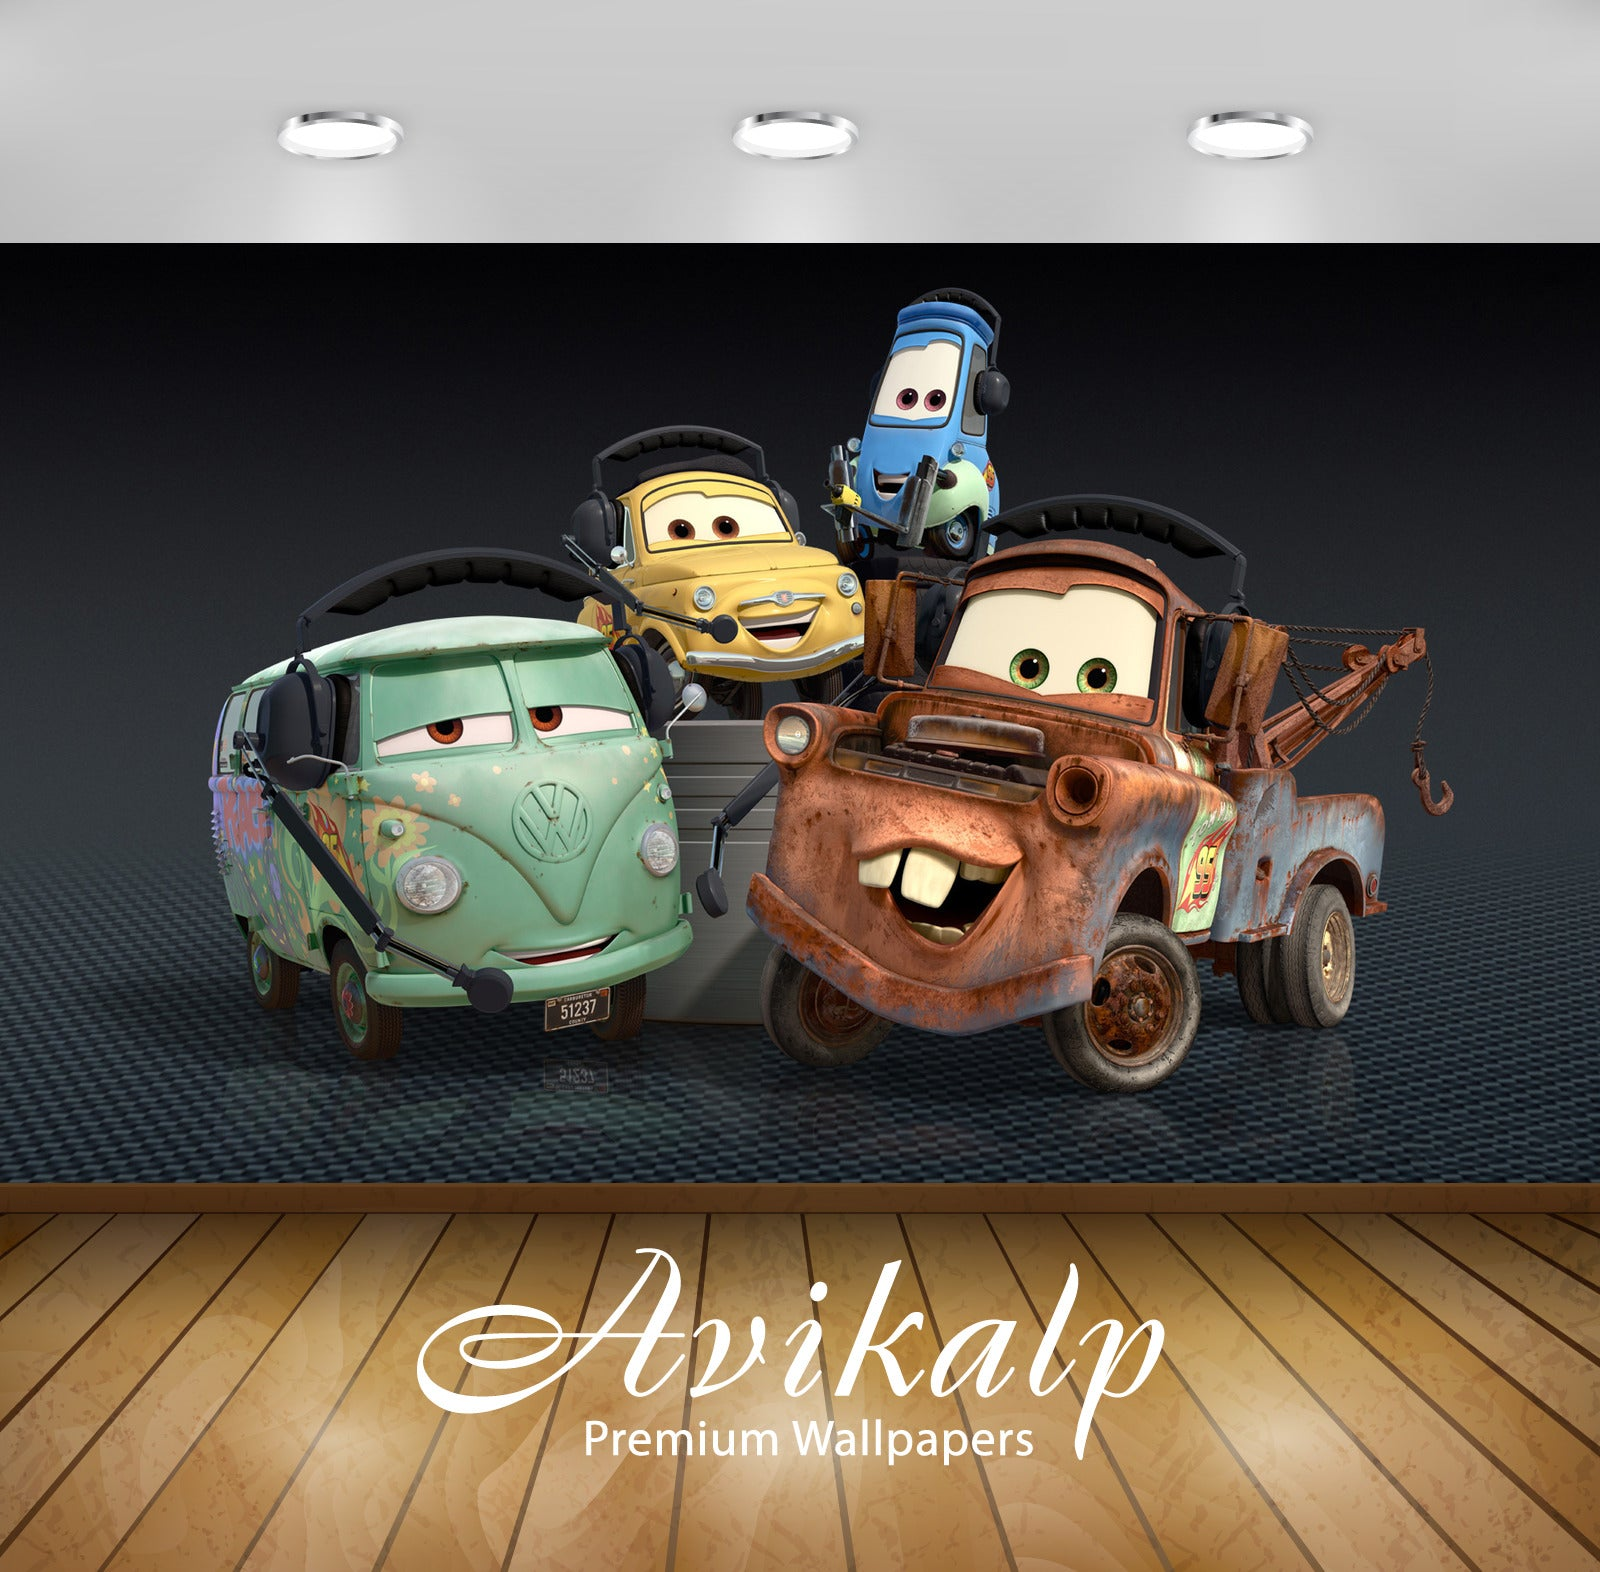 Avikalp Exclusive Awi3502 Cars Cartoon Full HD Wallpapers for Living room, Hall, Kids Room, Kitchen,